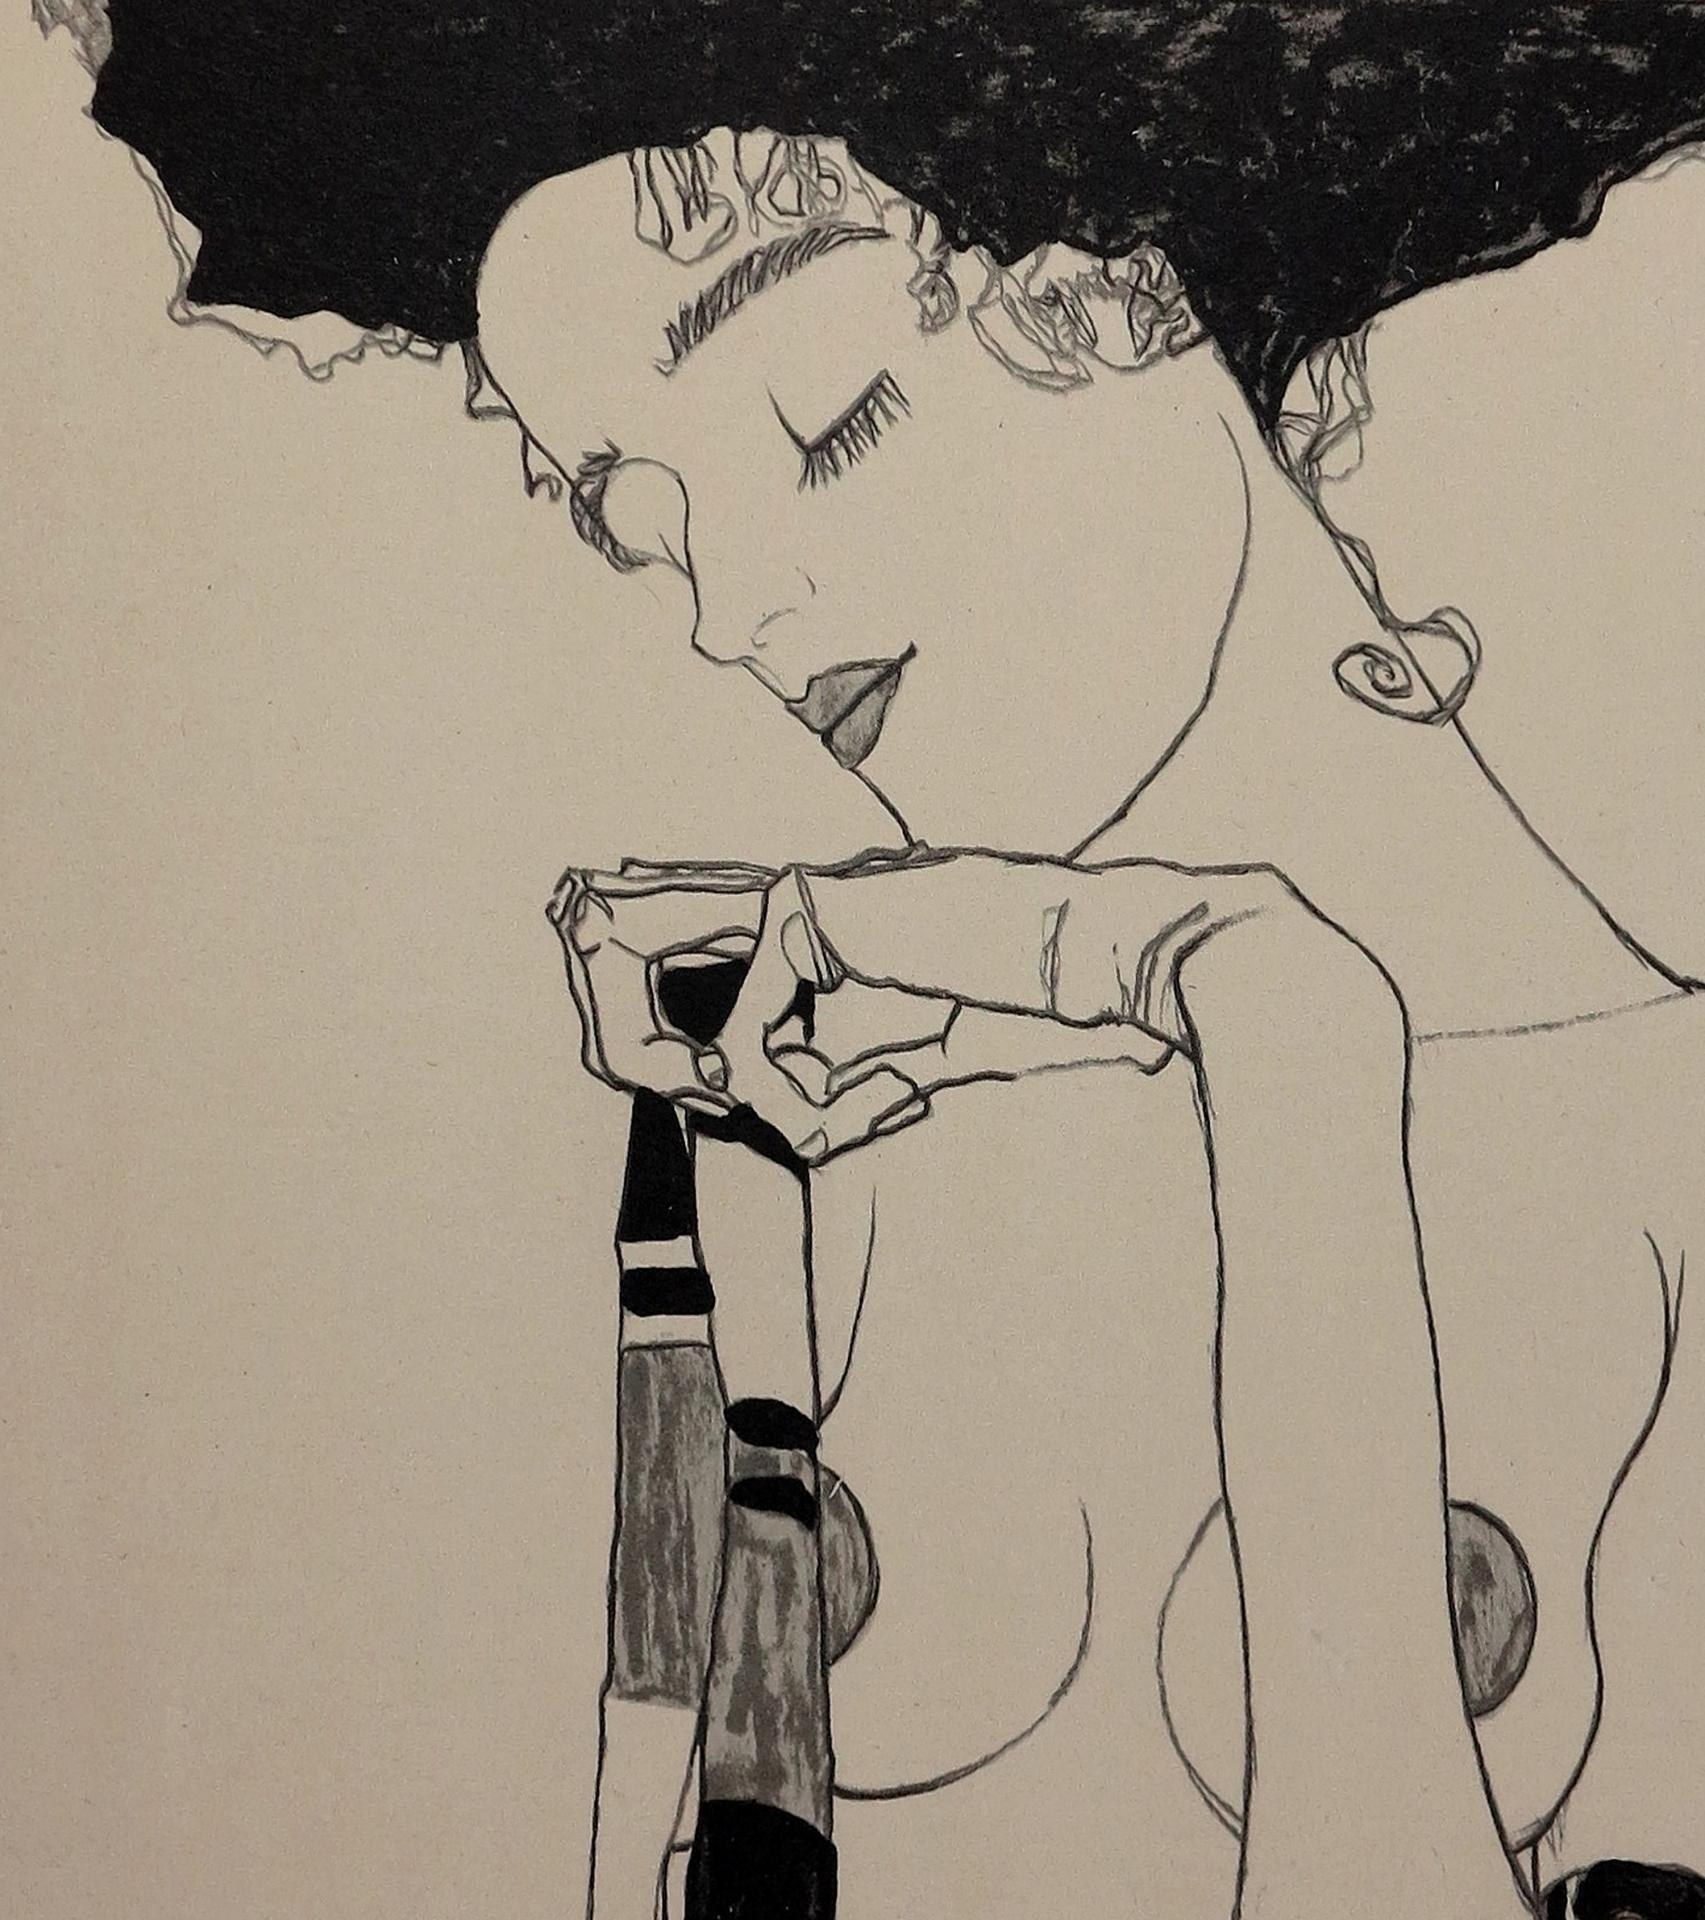 egon schiele Prints by austrian expressionist artist egon schiele available from goldmark in uppingham.